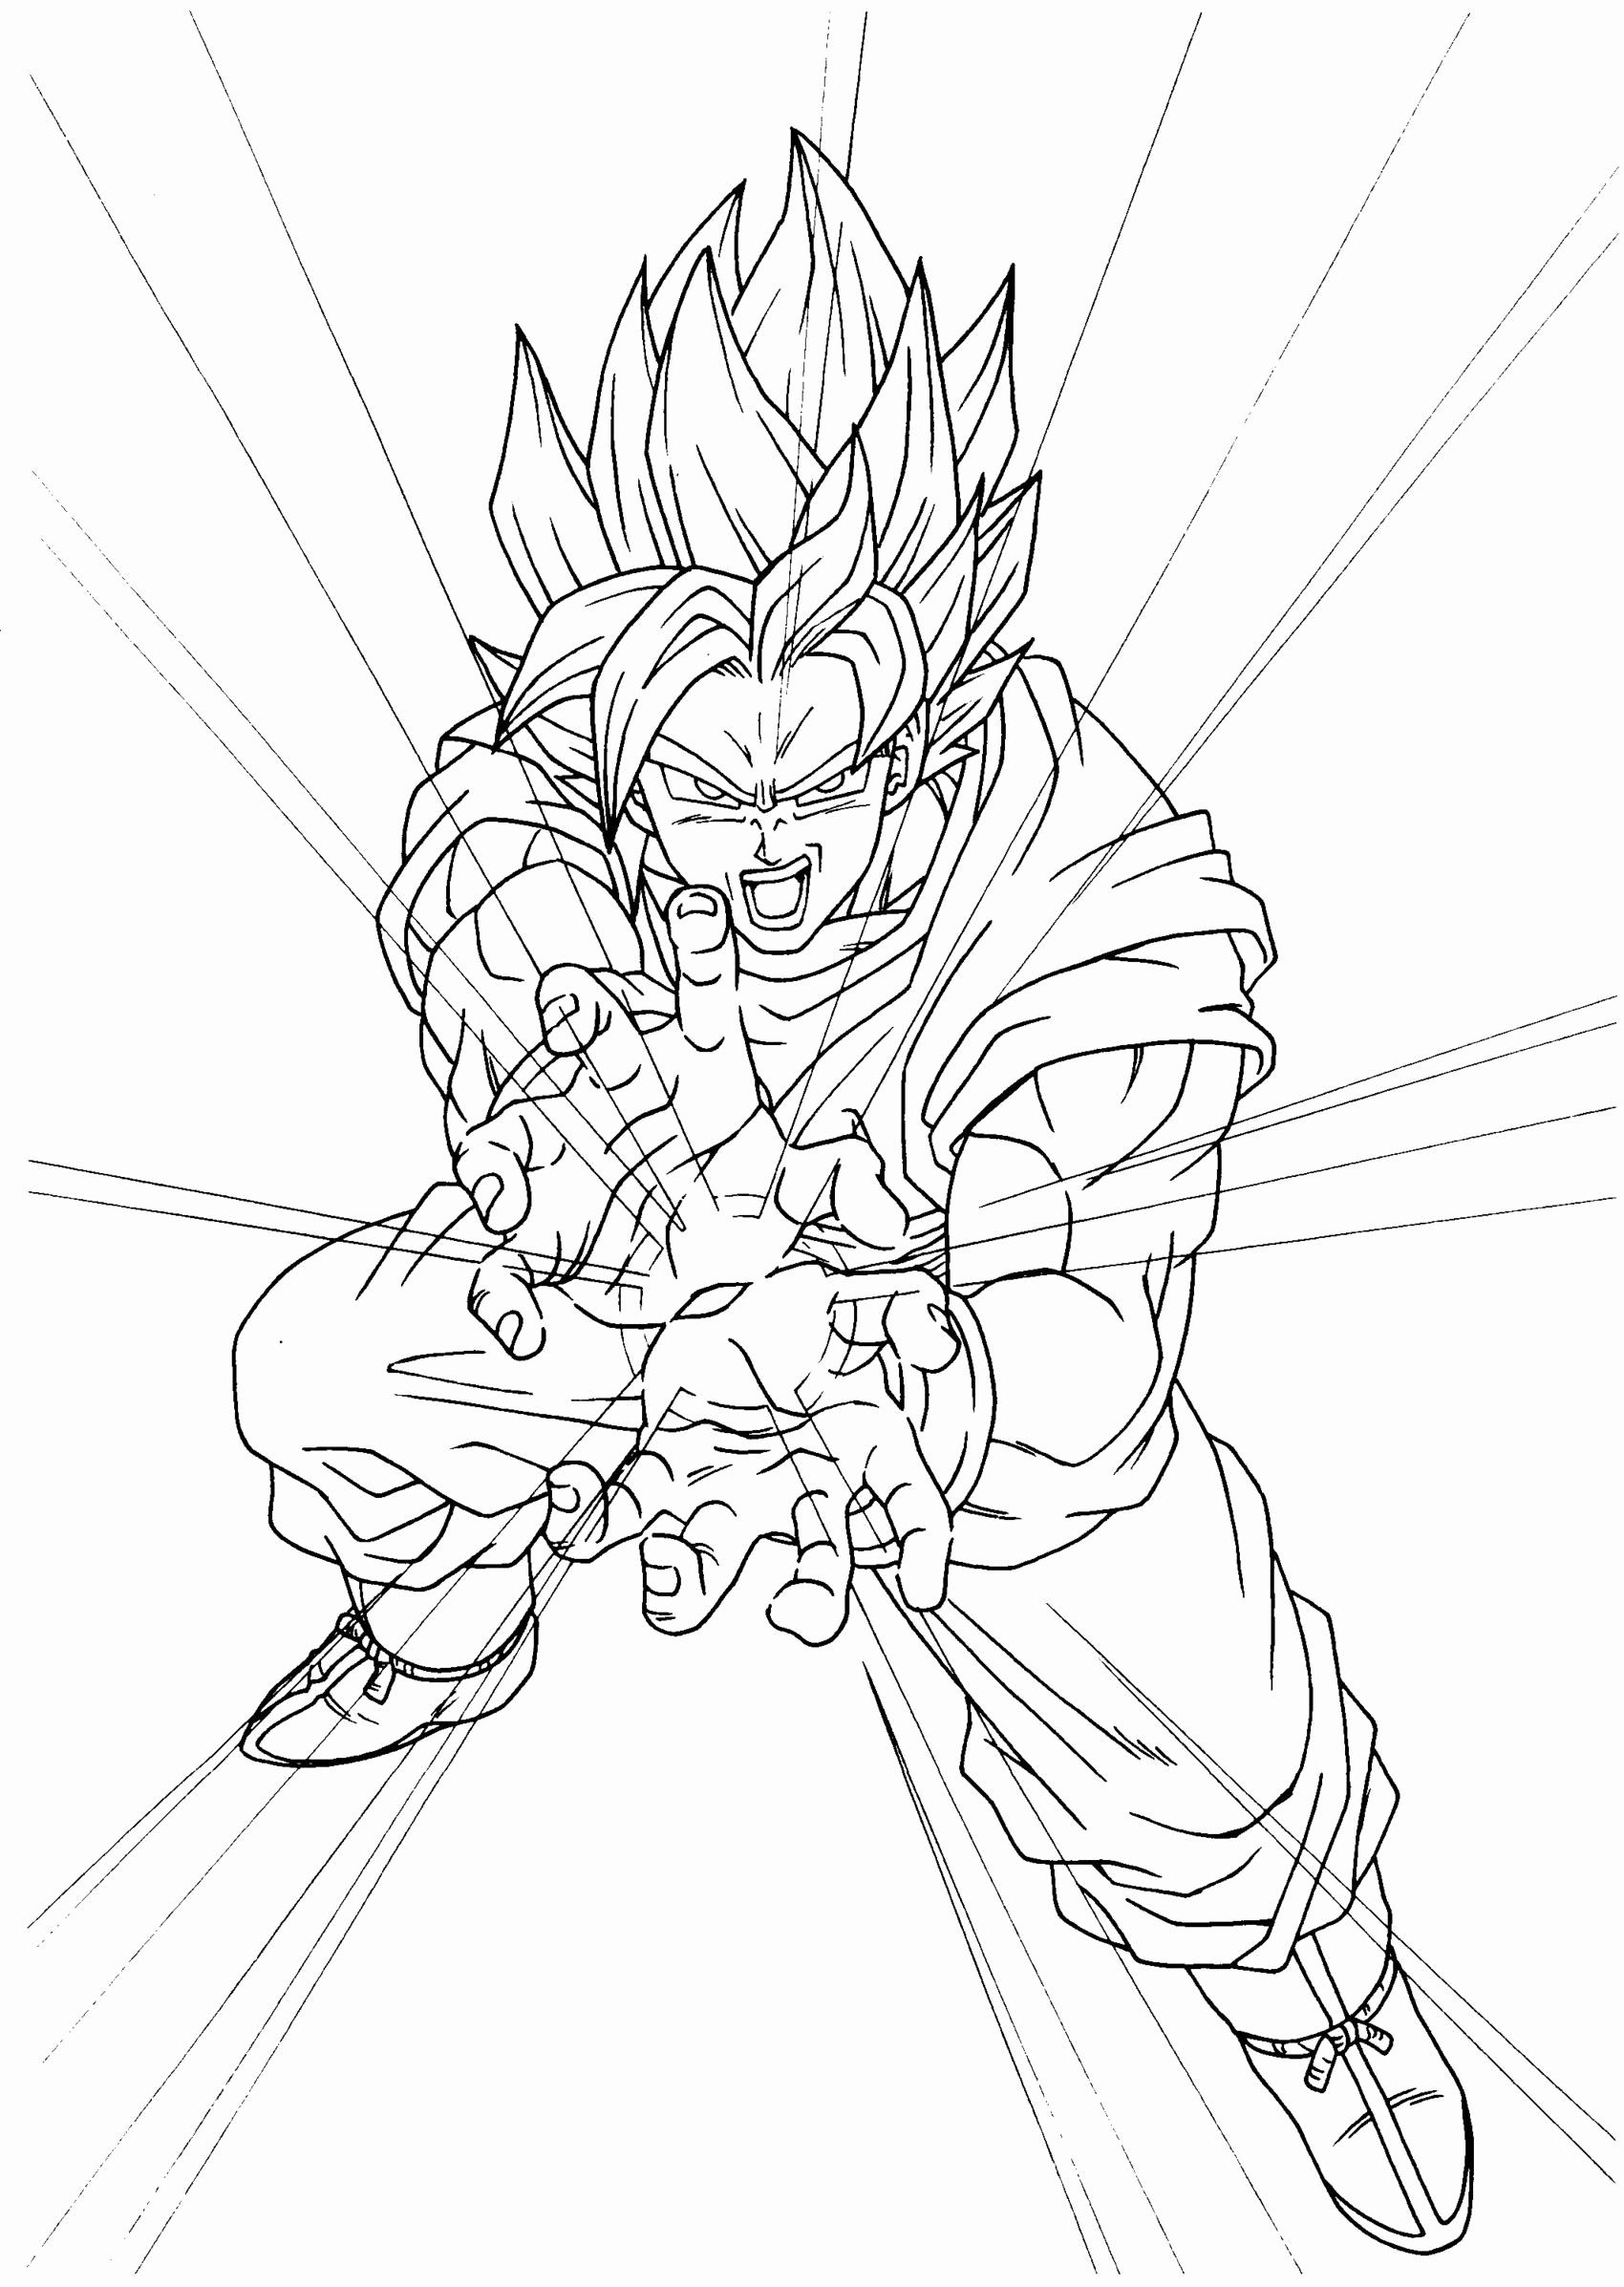 Dragon Ball Z Coloring Pages Printable Awesome Dragon Ball Z 87 Cartoons Printable Coloring Pages Dragon Ball Image Dragon Ball Goku Dragon Drawing